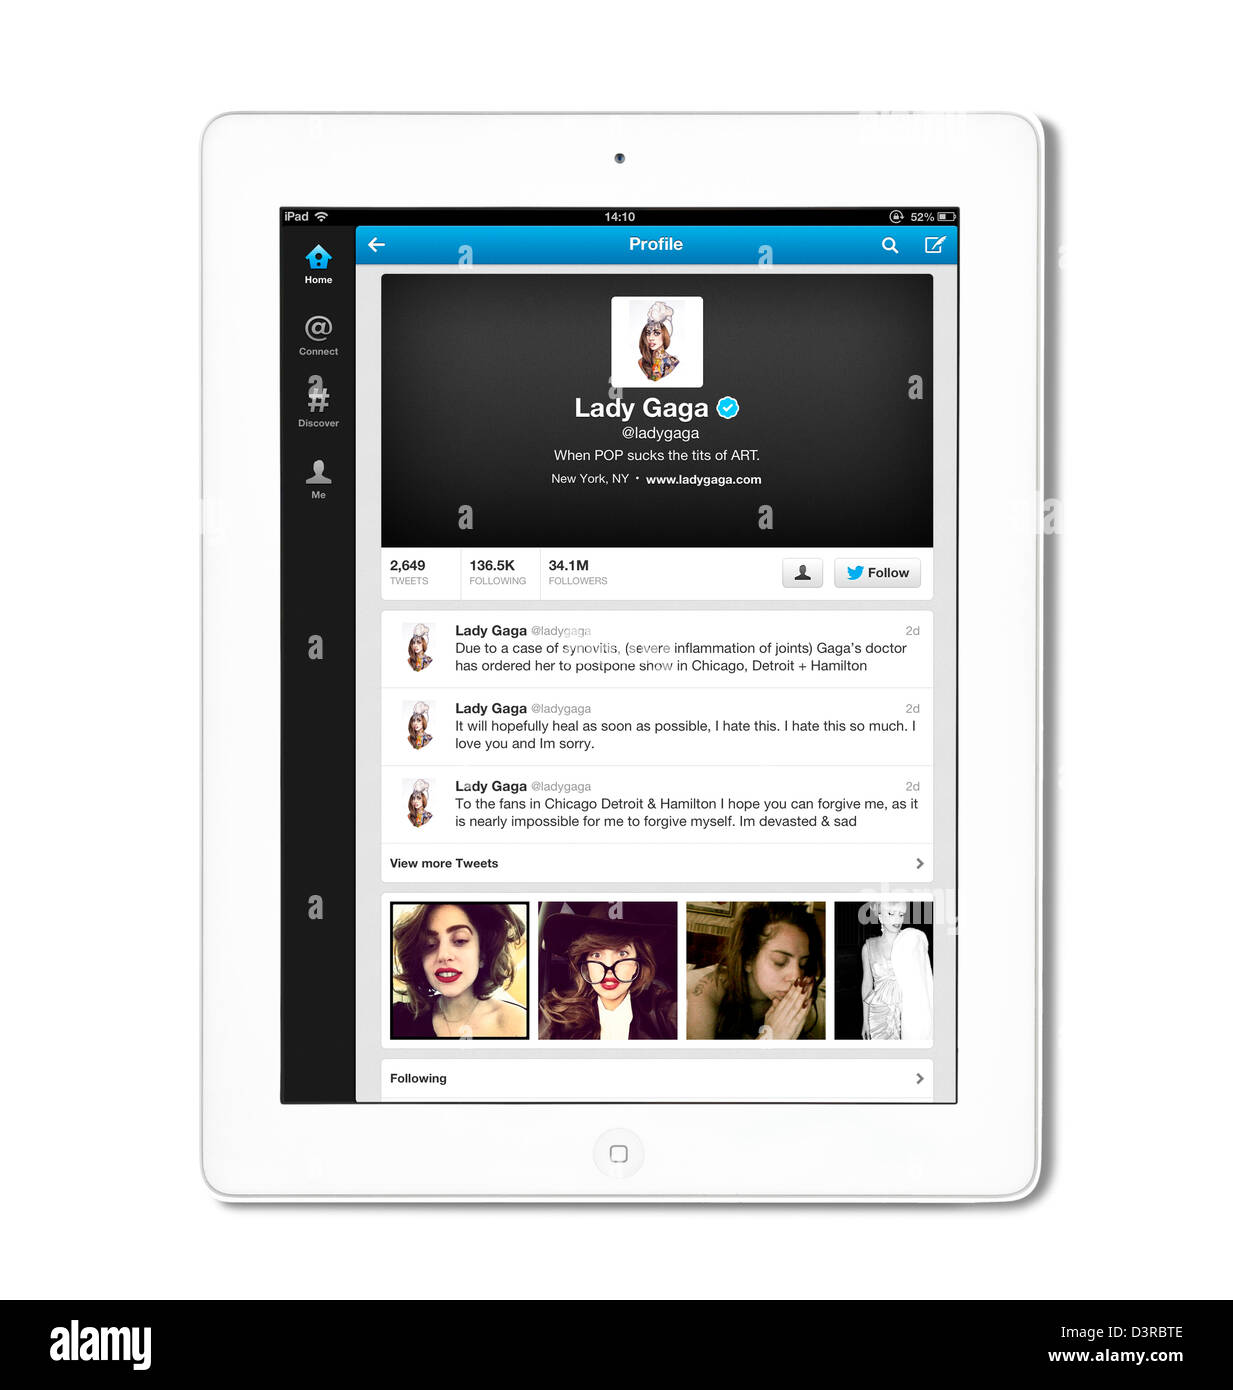 The pop singer Lady Gaga's Twitter profile page viewed on an iPad. Lady Gaga is at the top of the list of most - Stock Image